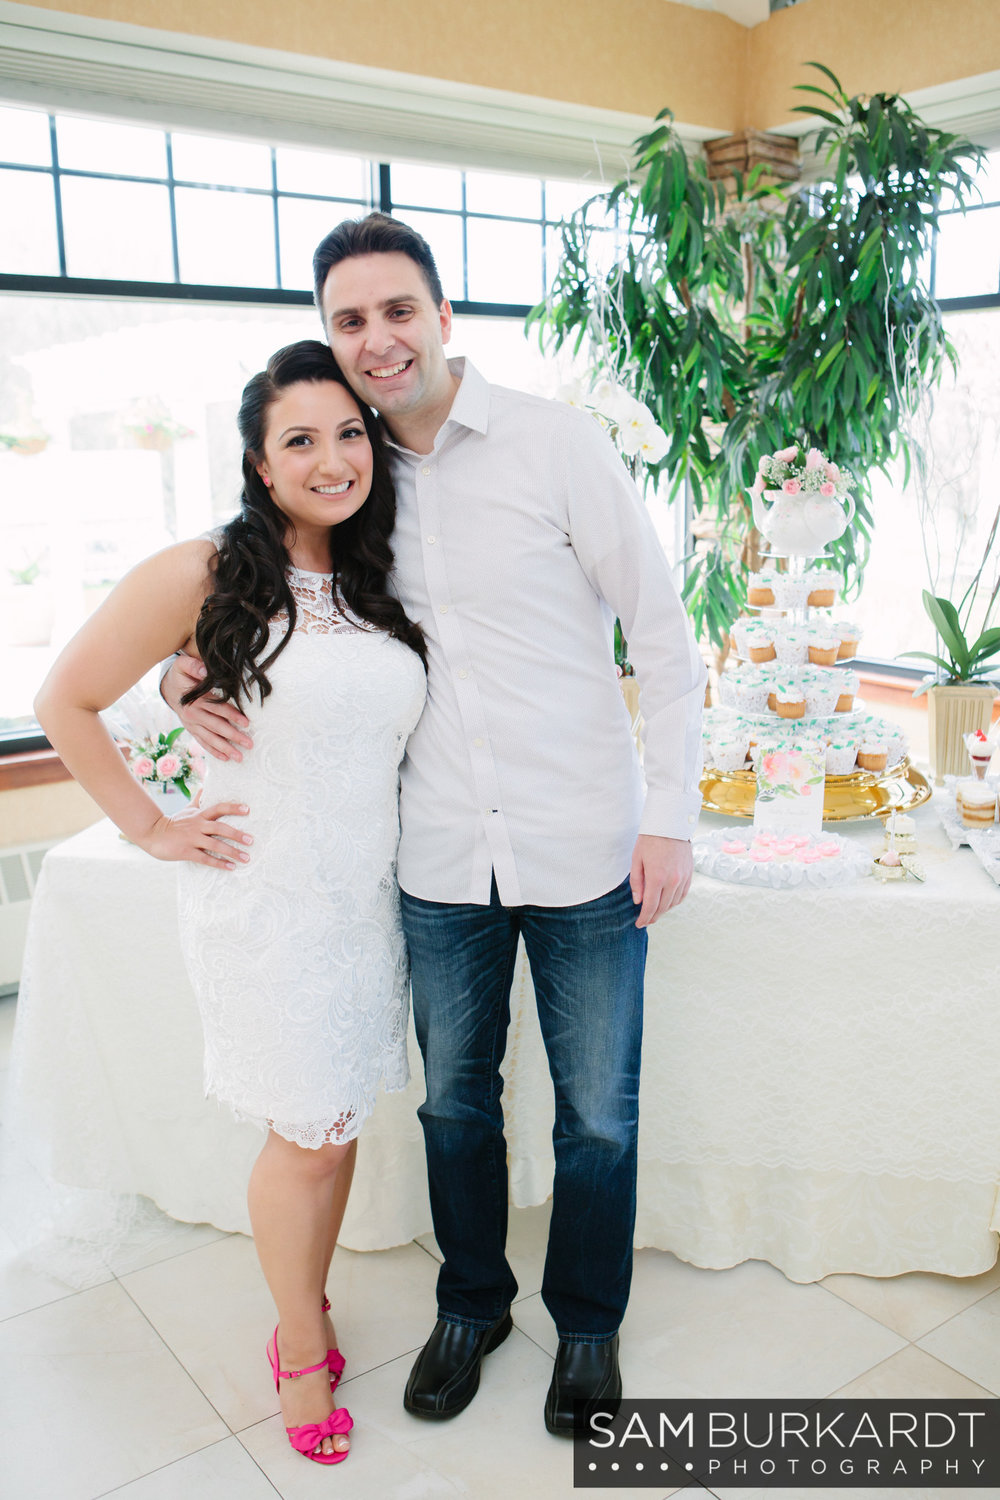 samburkardt_bridal_shower_trumbull_connecticut_photography_wedding_0002.jpg